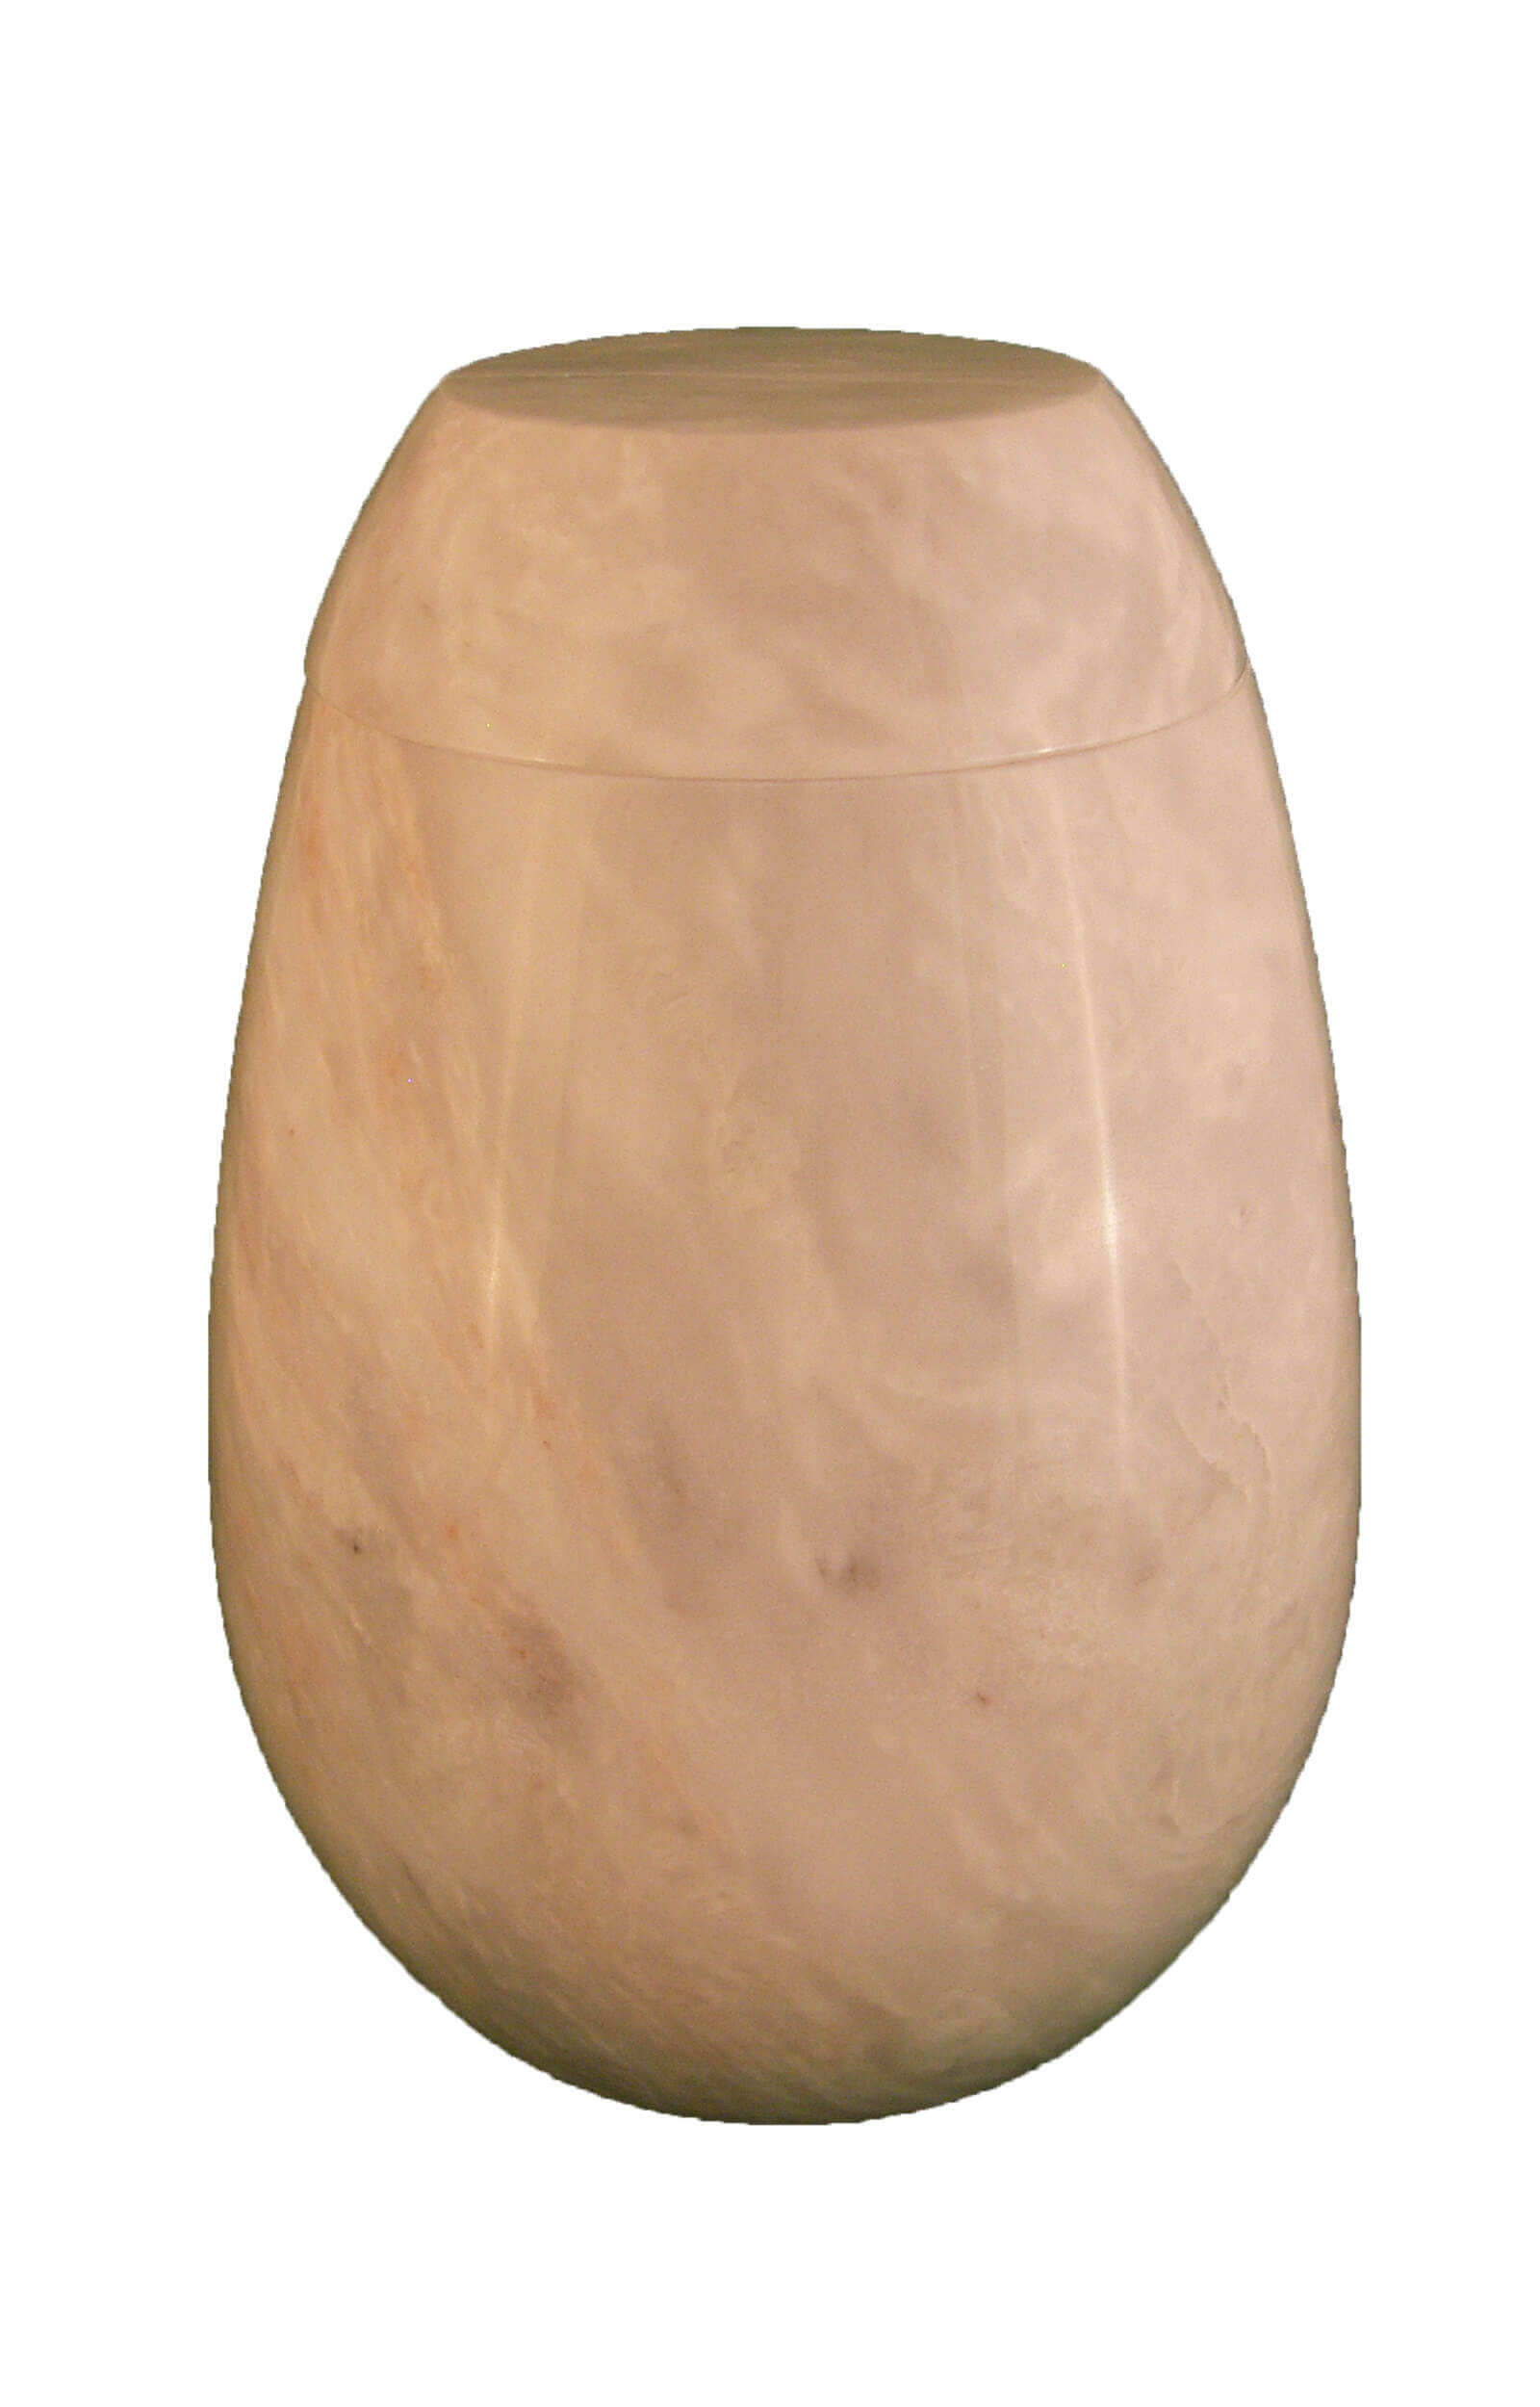 en MA2951 Ziarat marbel urn for human ashes white grey glossy round funeral urns on sale